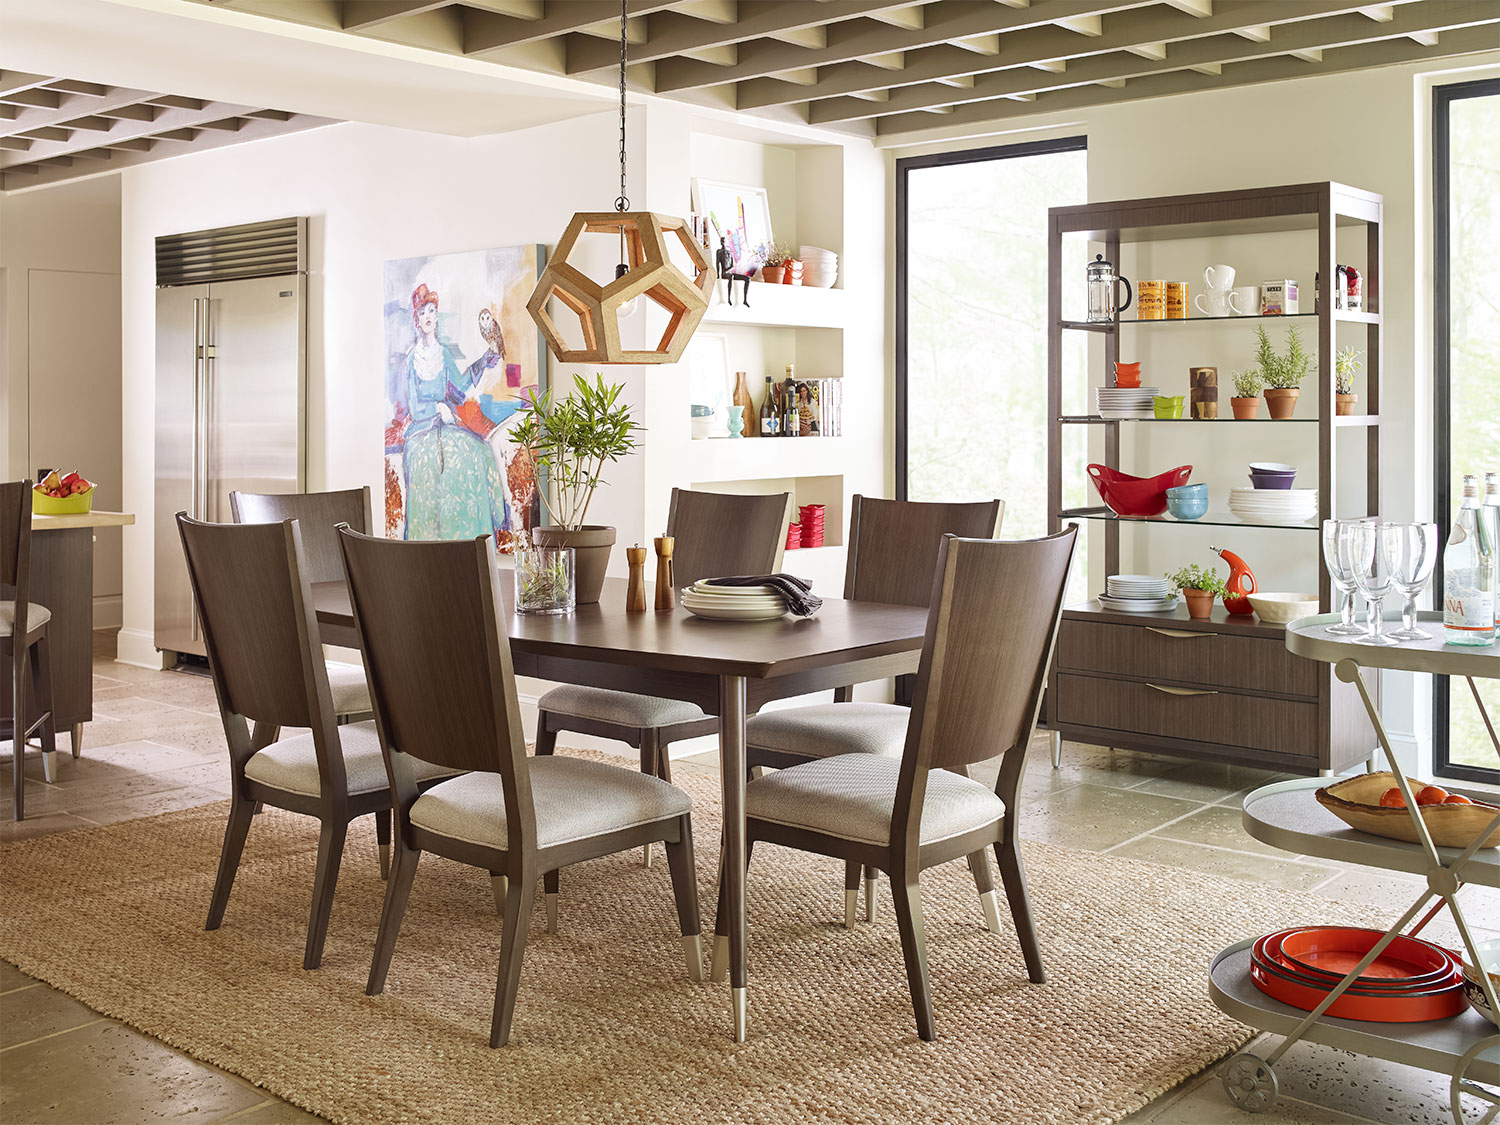 Rachael Ray Soho Dining Table With Leaf